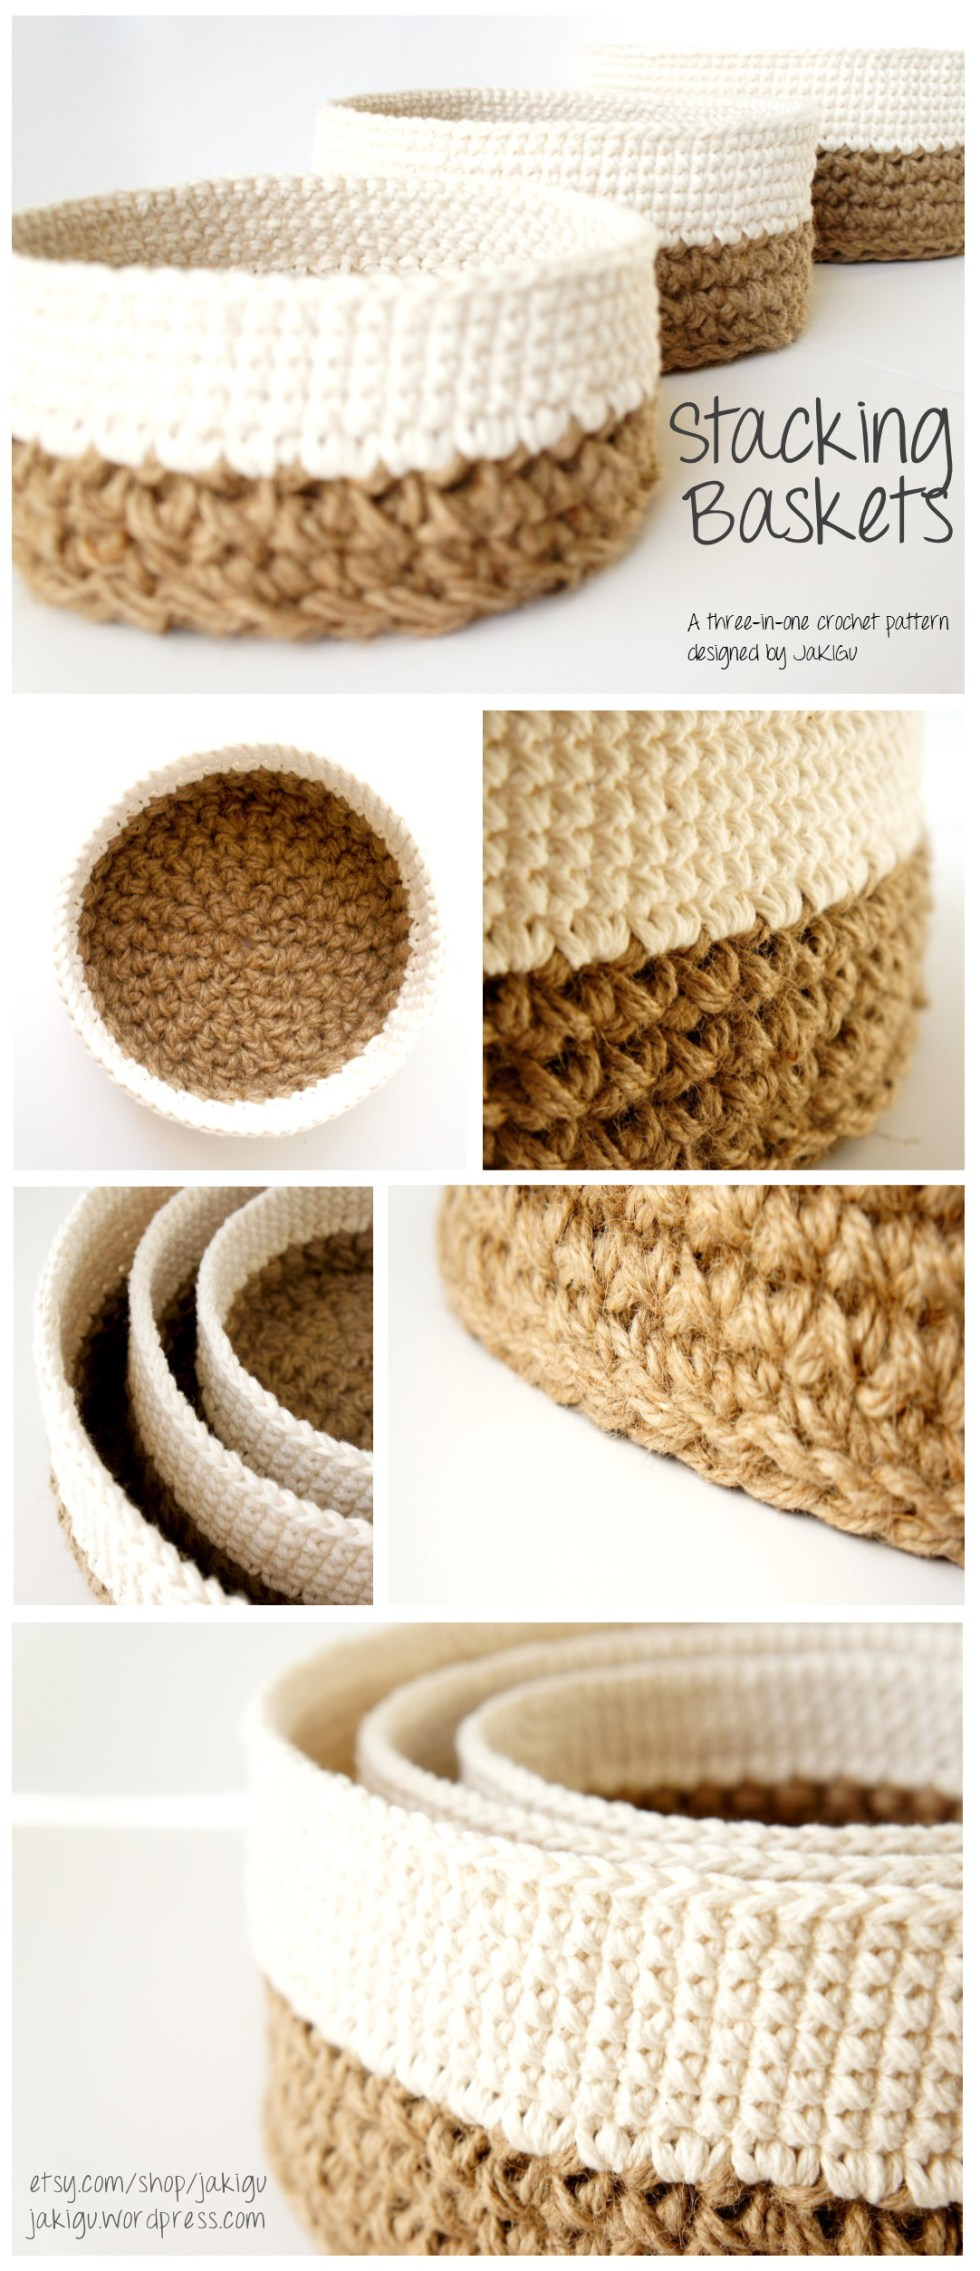 Round jute and cotton stacking baskets - original crochet pattern by jakigu.com